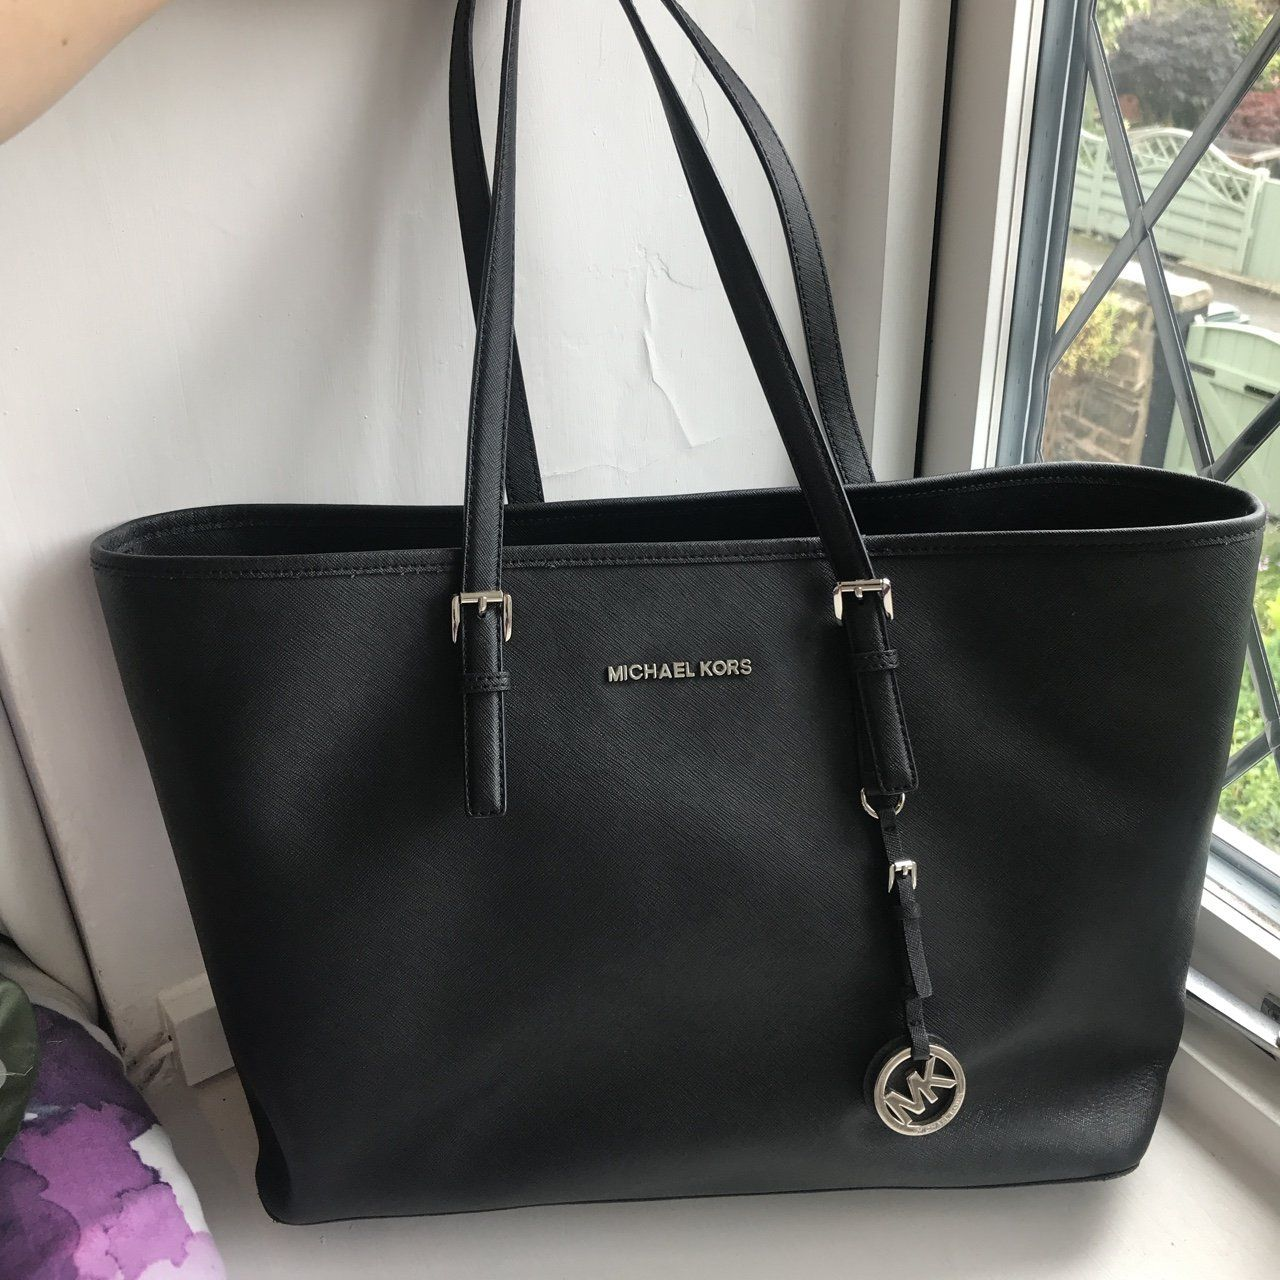 28170d06bd55 Black Michael kors jet set black bag, only defect is seen in - Depop ...